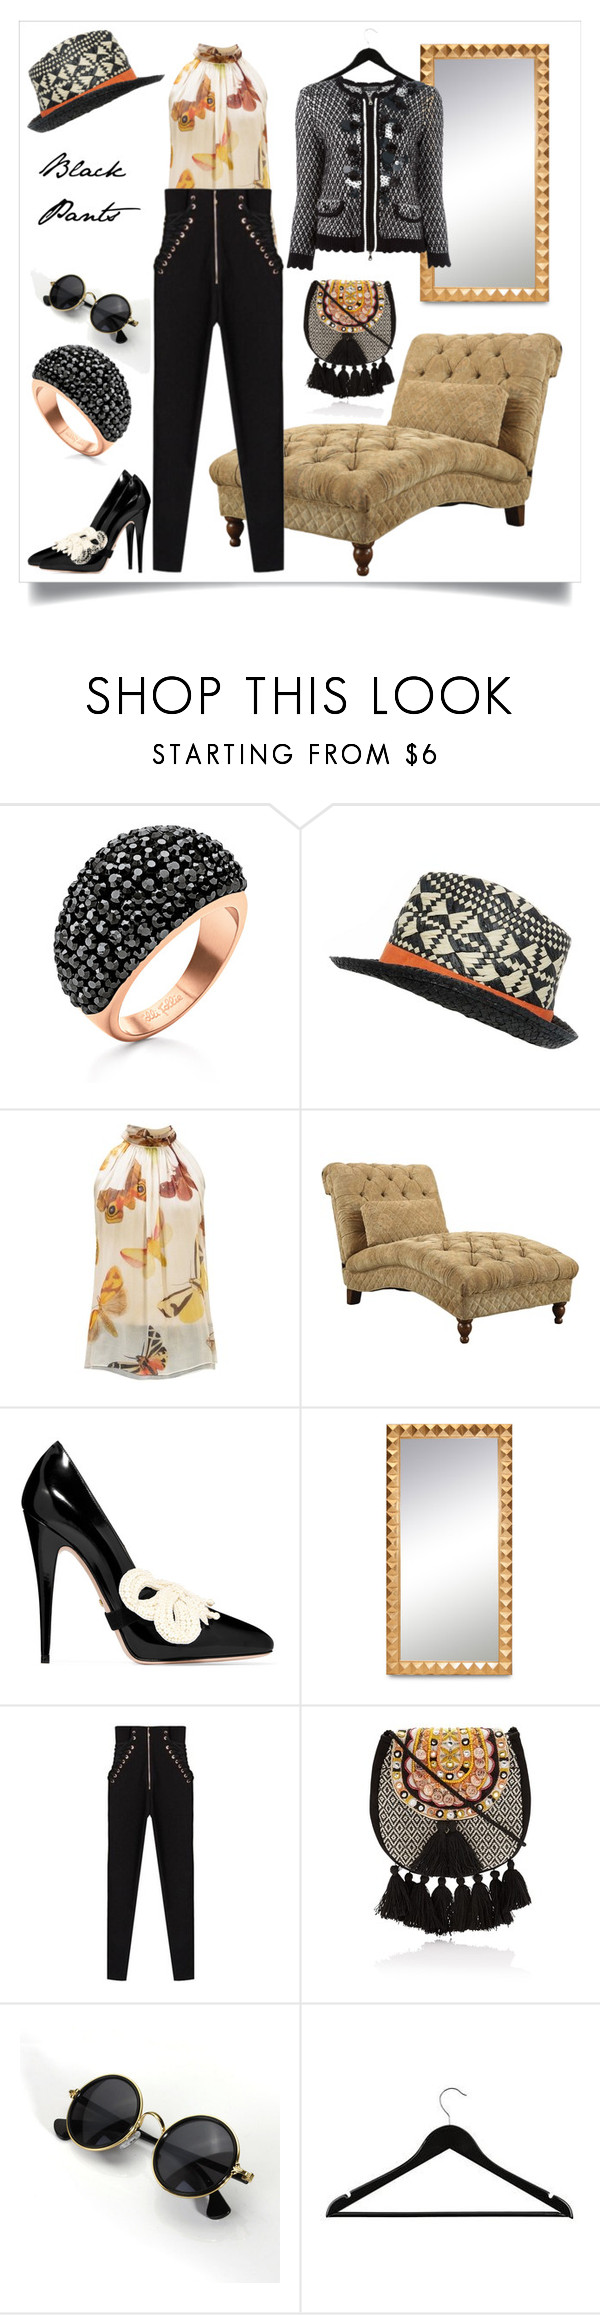 """""""#blackpants"""" by delaro ❤ liked on Polyvore featuring Folli Follie, Alexander McQueen, Coaster, Gucci, Elwood and Twin-Set"""